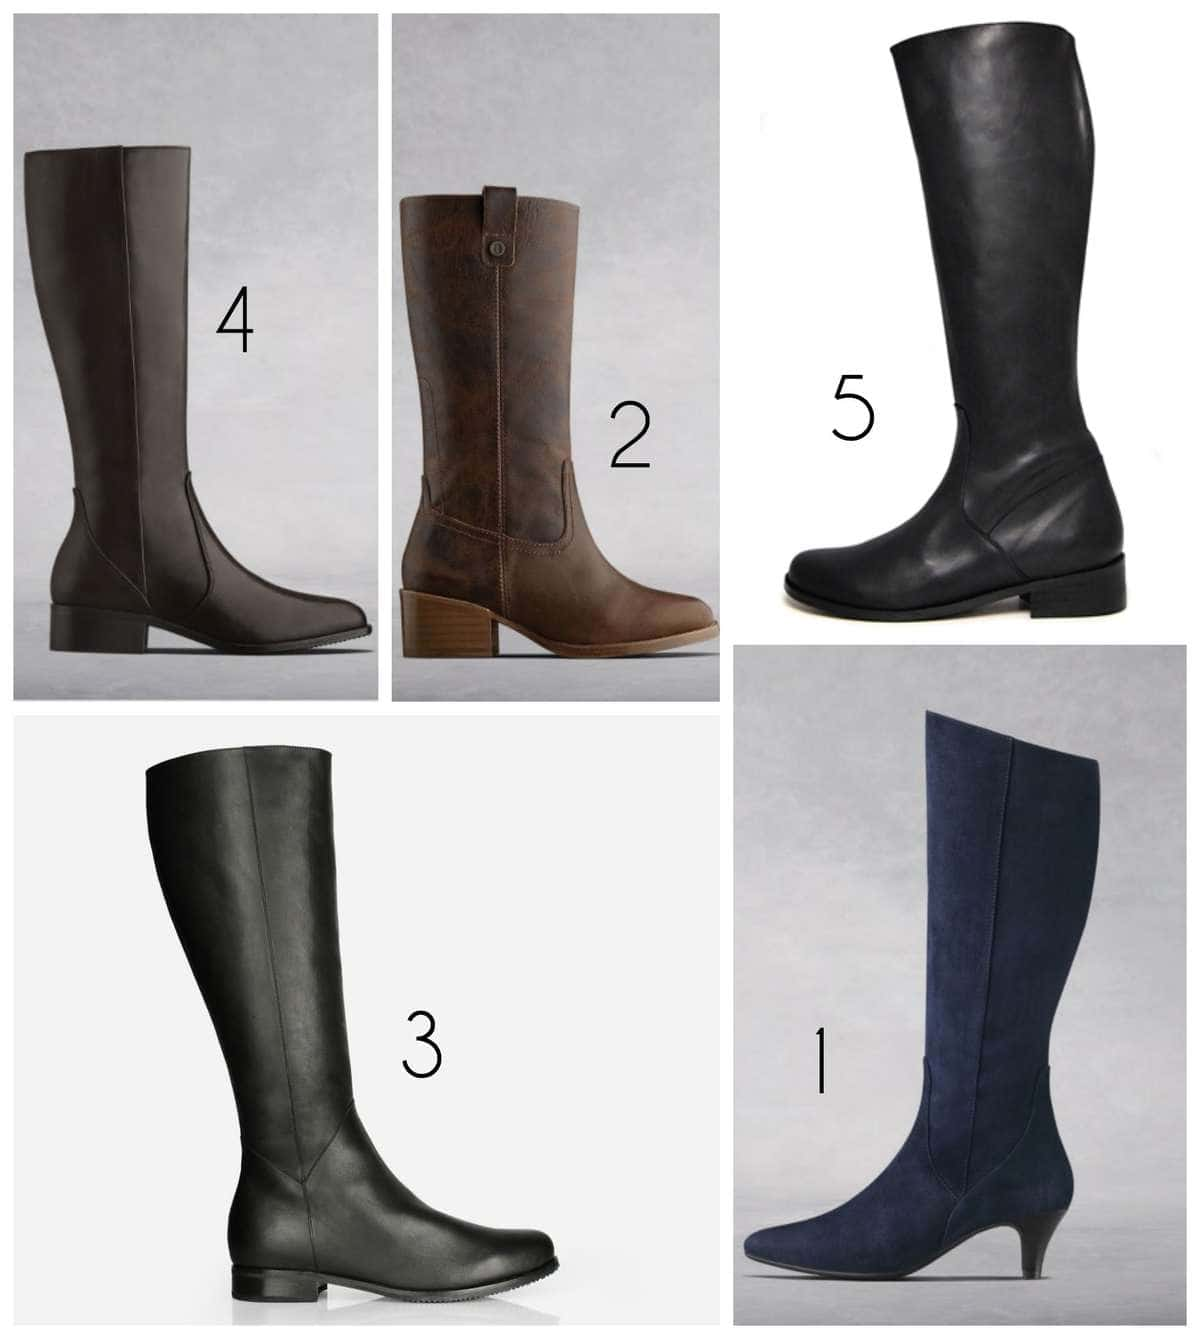 the most stylish wide calf boots including options for petite legs